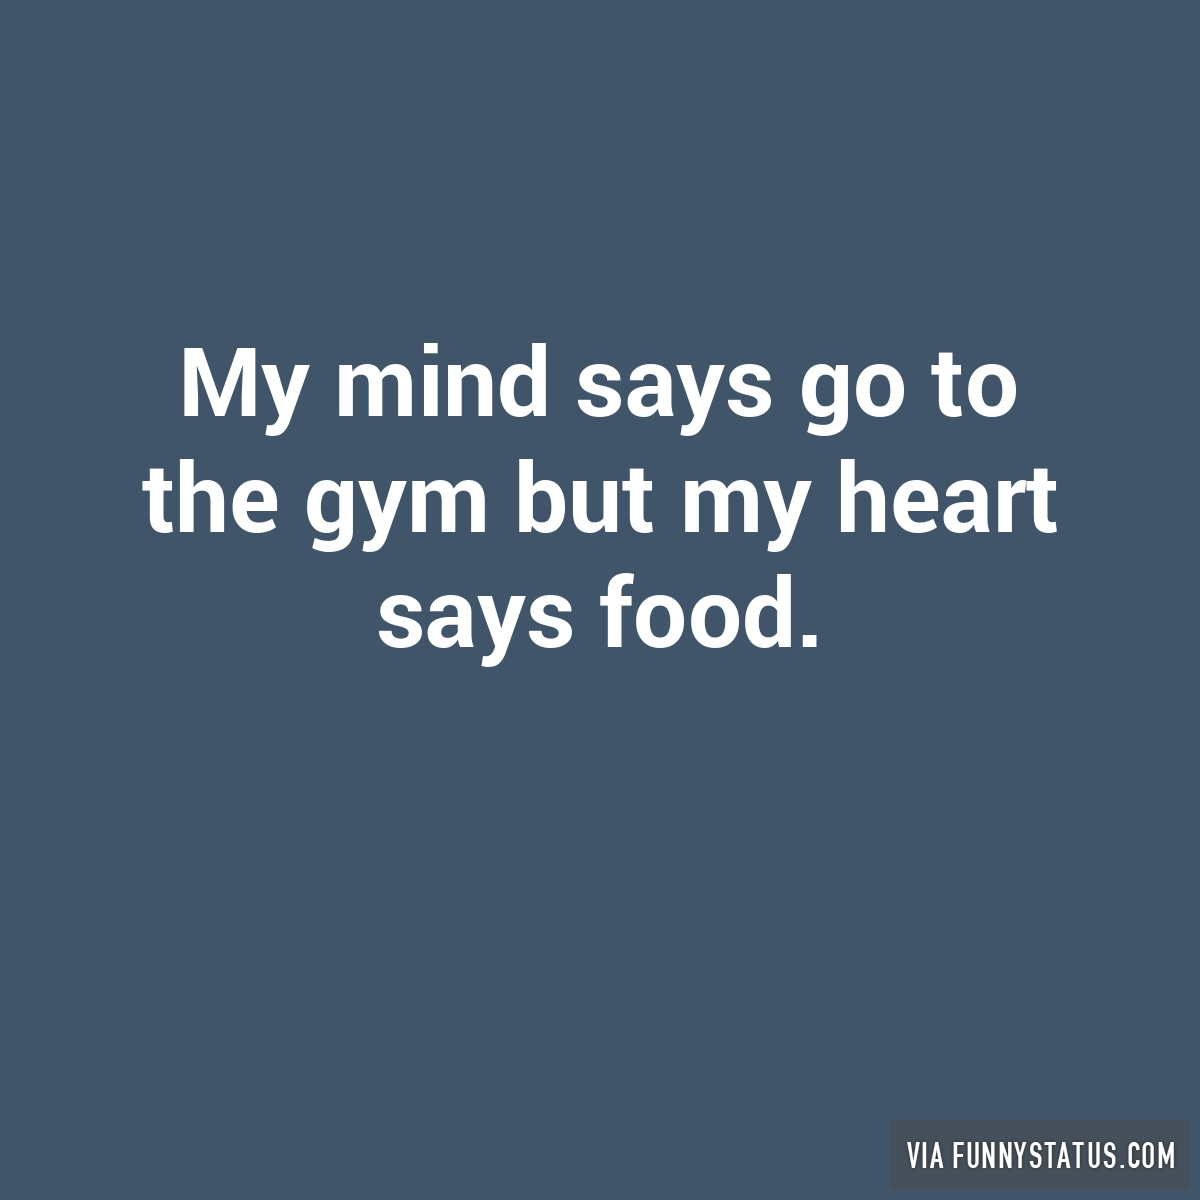 how to change my mind about food